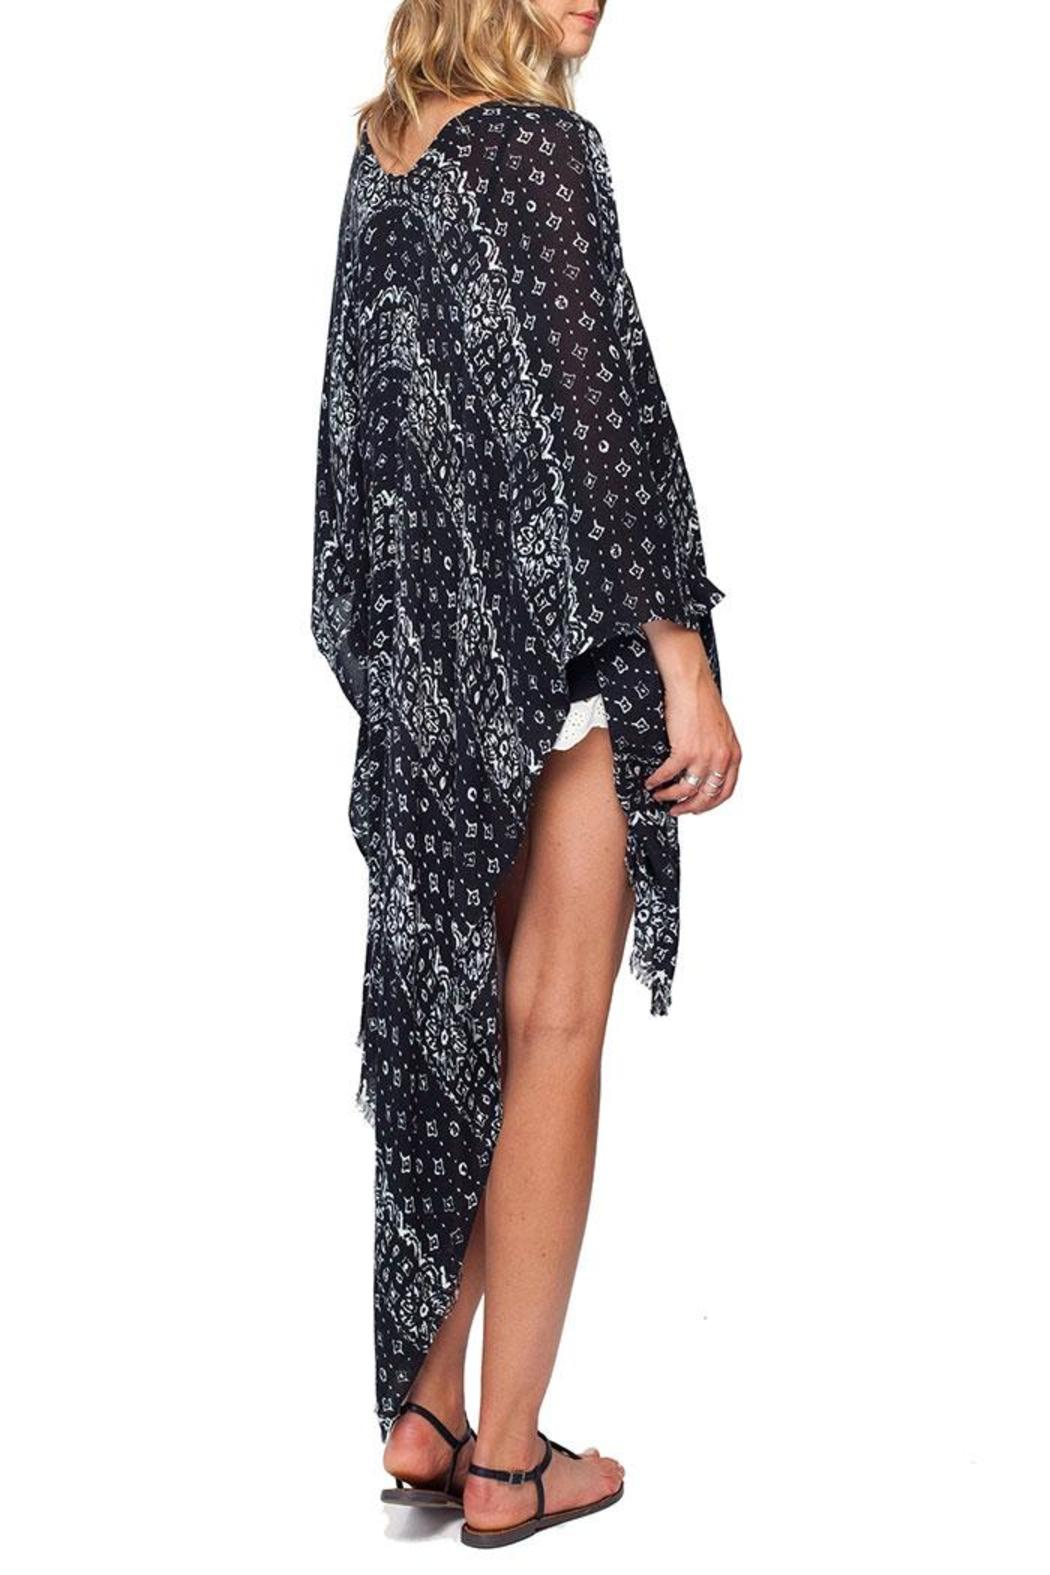 Gentle Fawn Gallery Kimono Scarf - Back Cropped Image